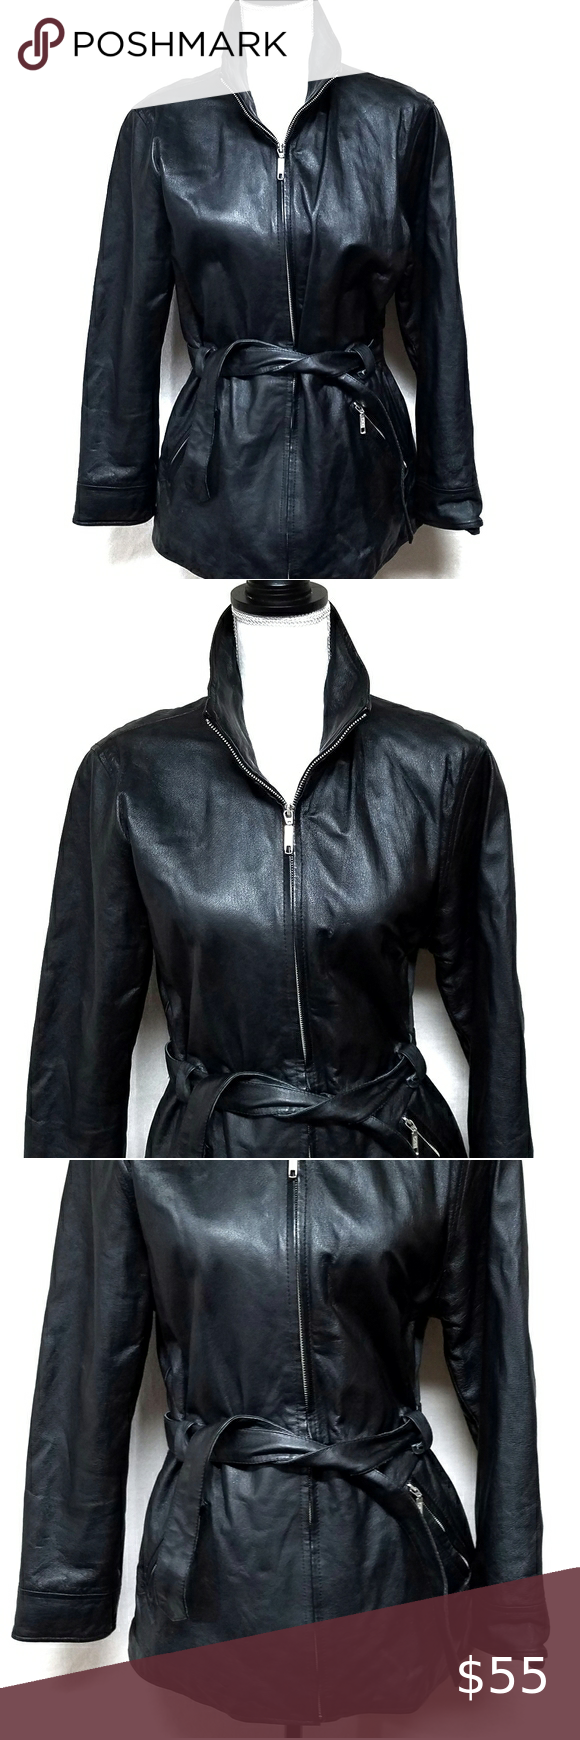 80s Vintage Comint Black Leather Tie Waist Jacket Wool Blend Jacket Lace Bodycon Dress Printed Sleeveless Top [ 1740 x 580 Pixel ]